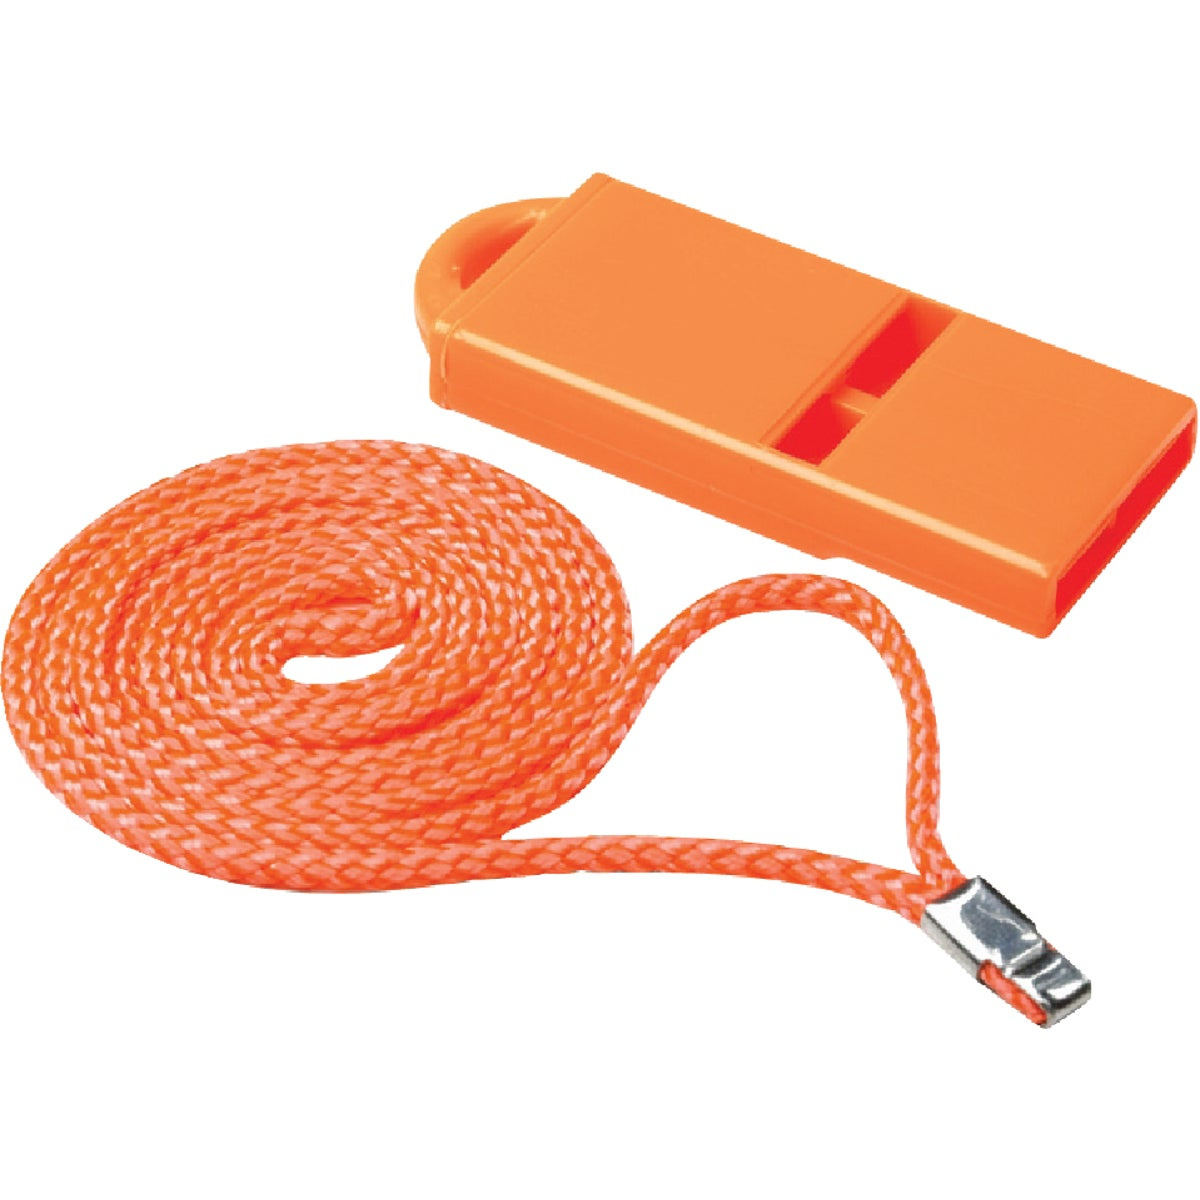 ORANGE PLASTIC WHISTLE